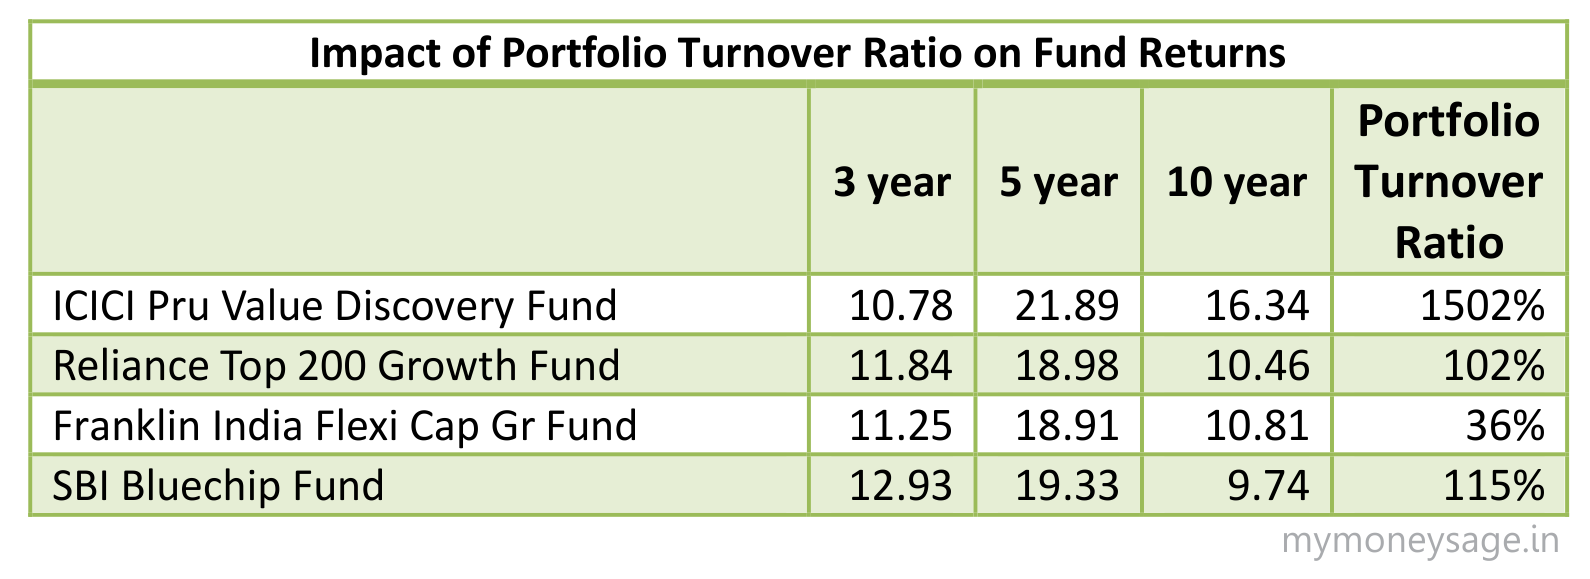 Portfolio Turnover Ratio: Here's what to look for